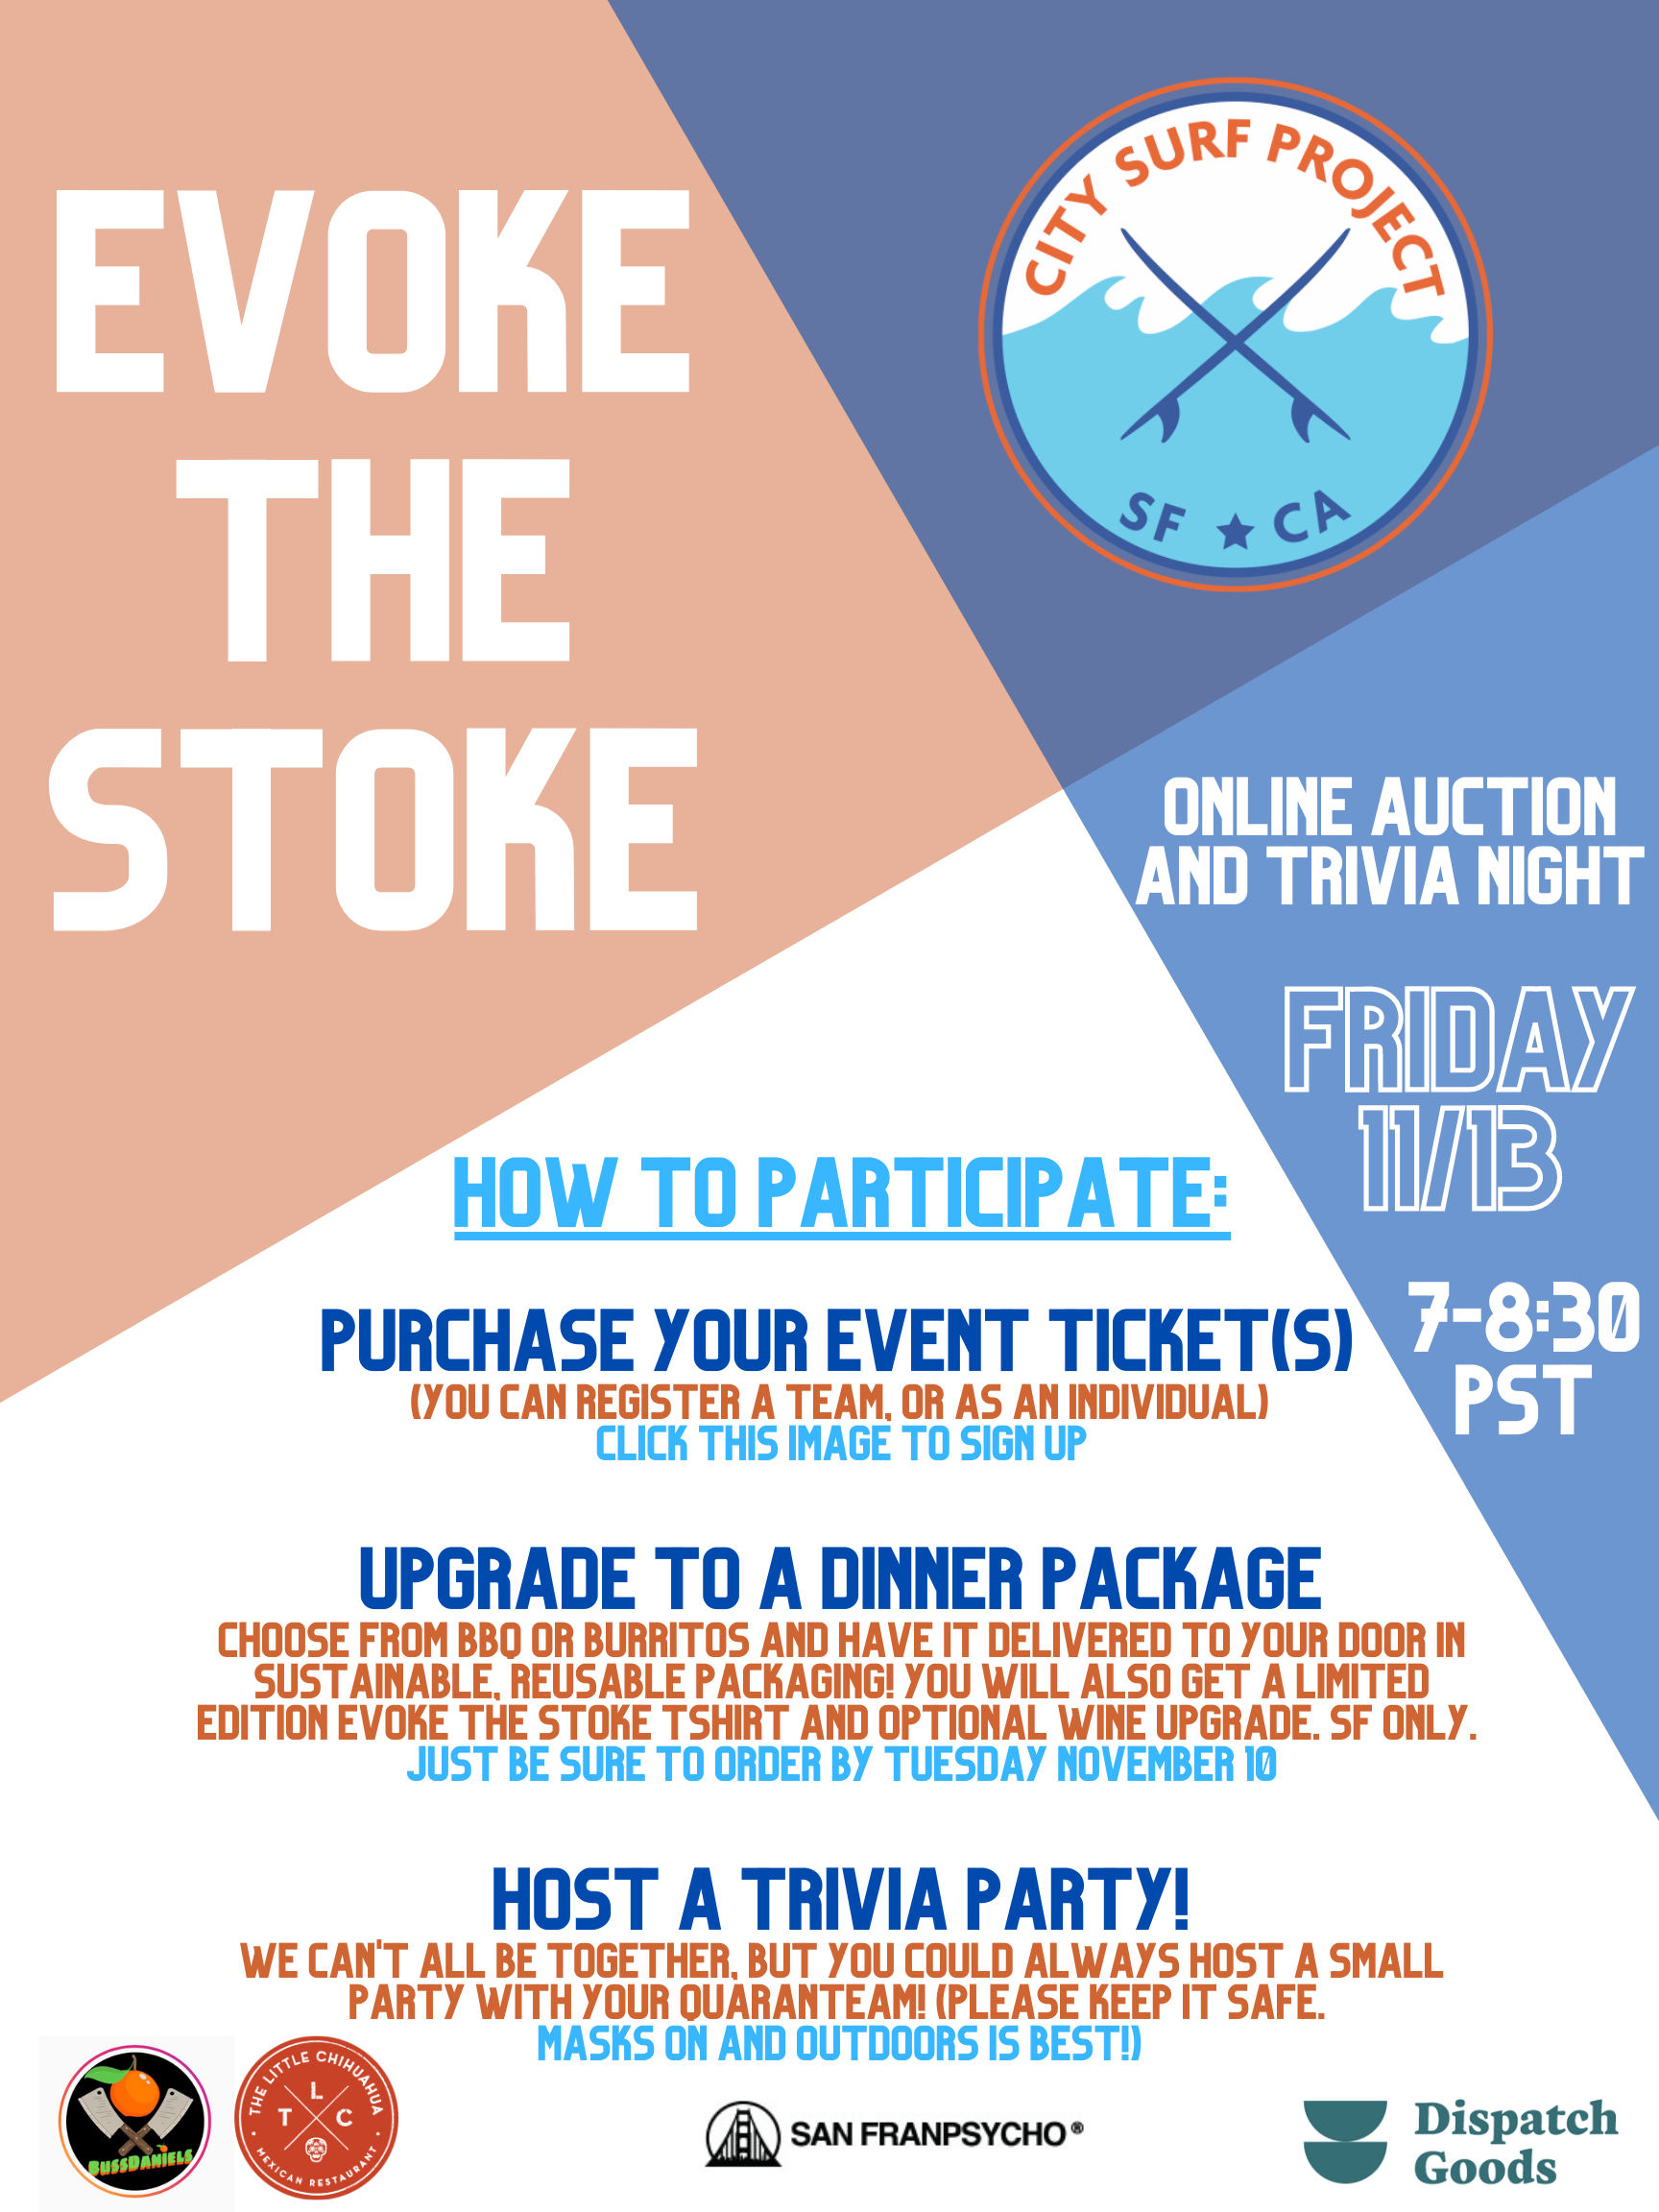 EVOKE THE STOKE - instructions-5